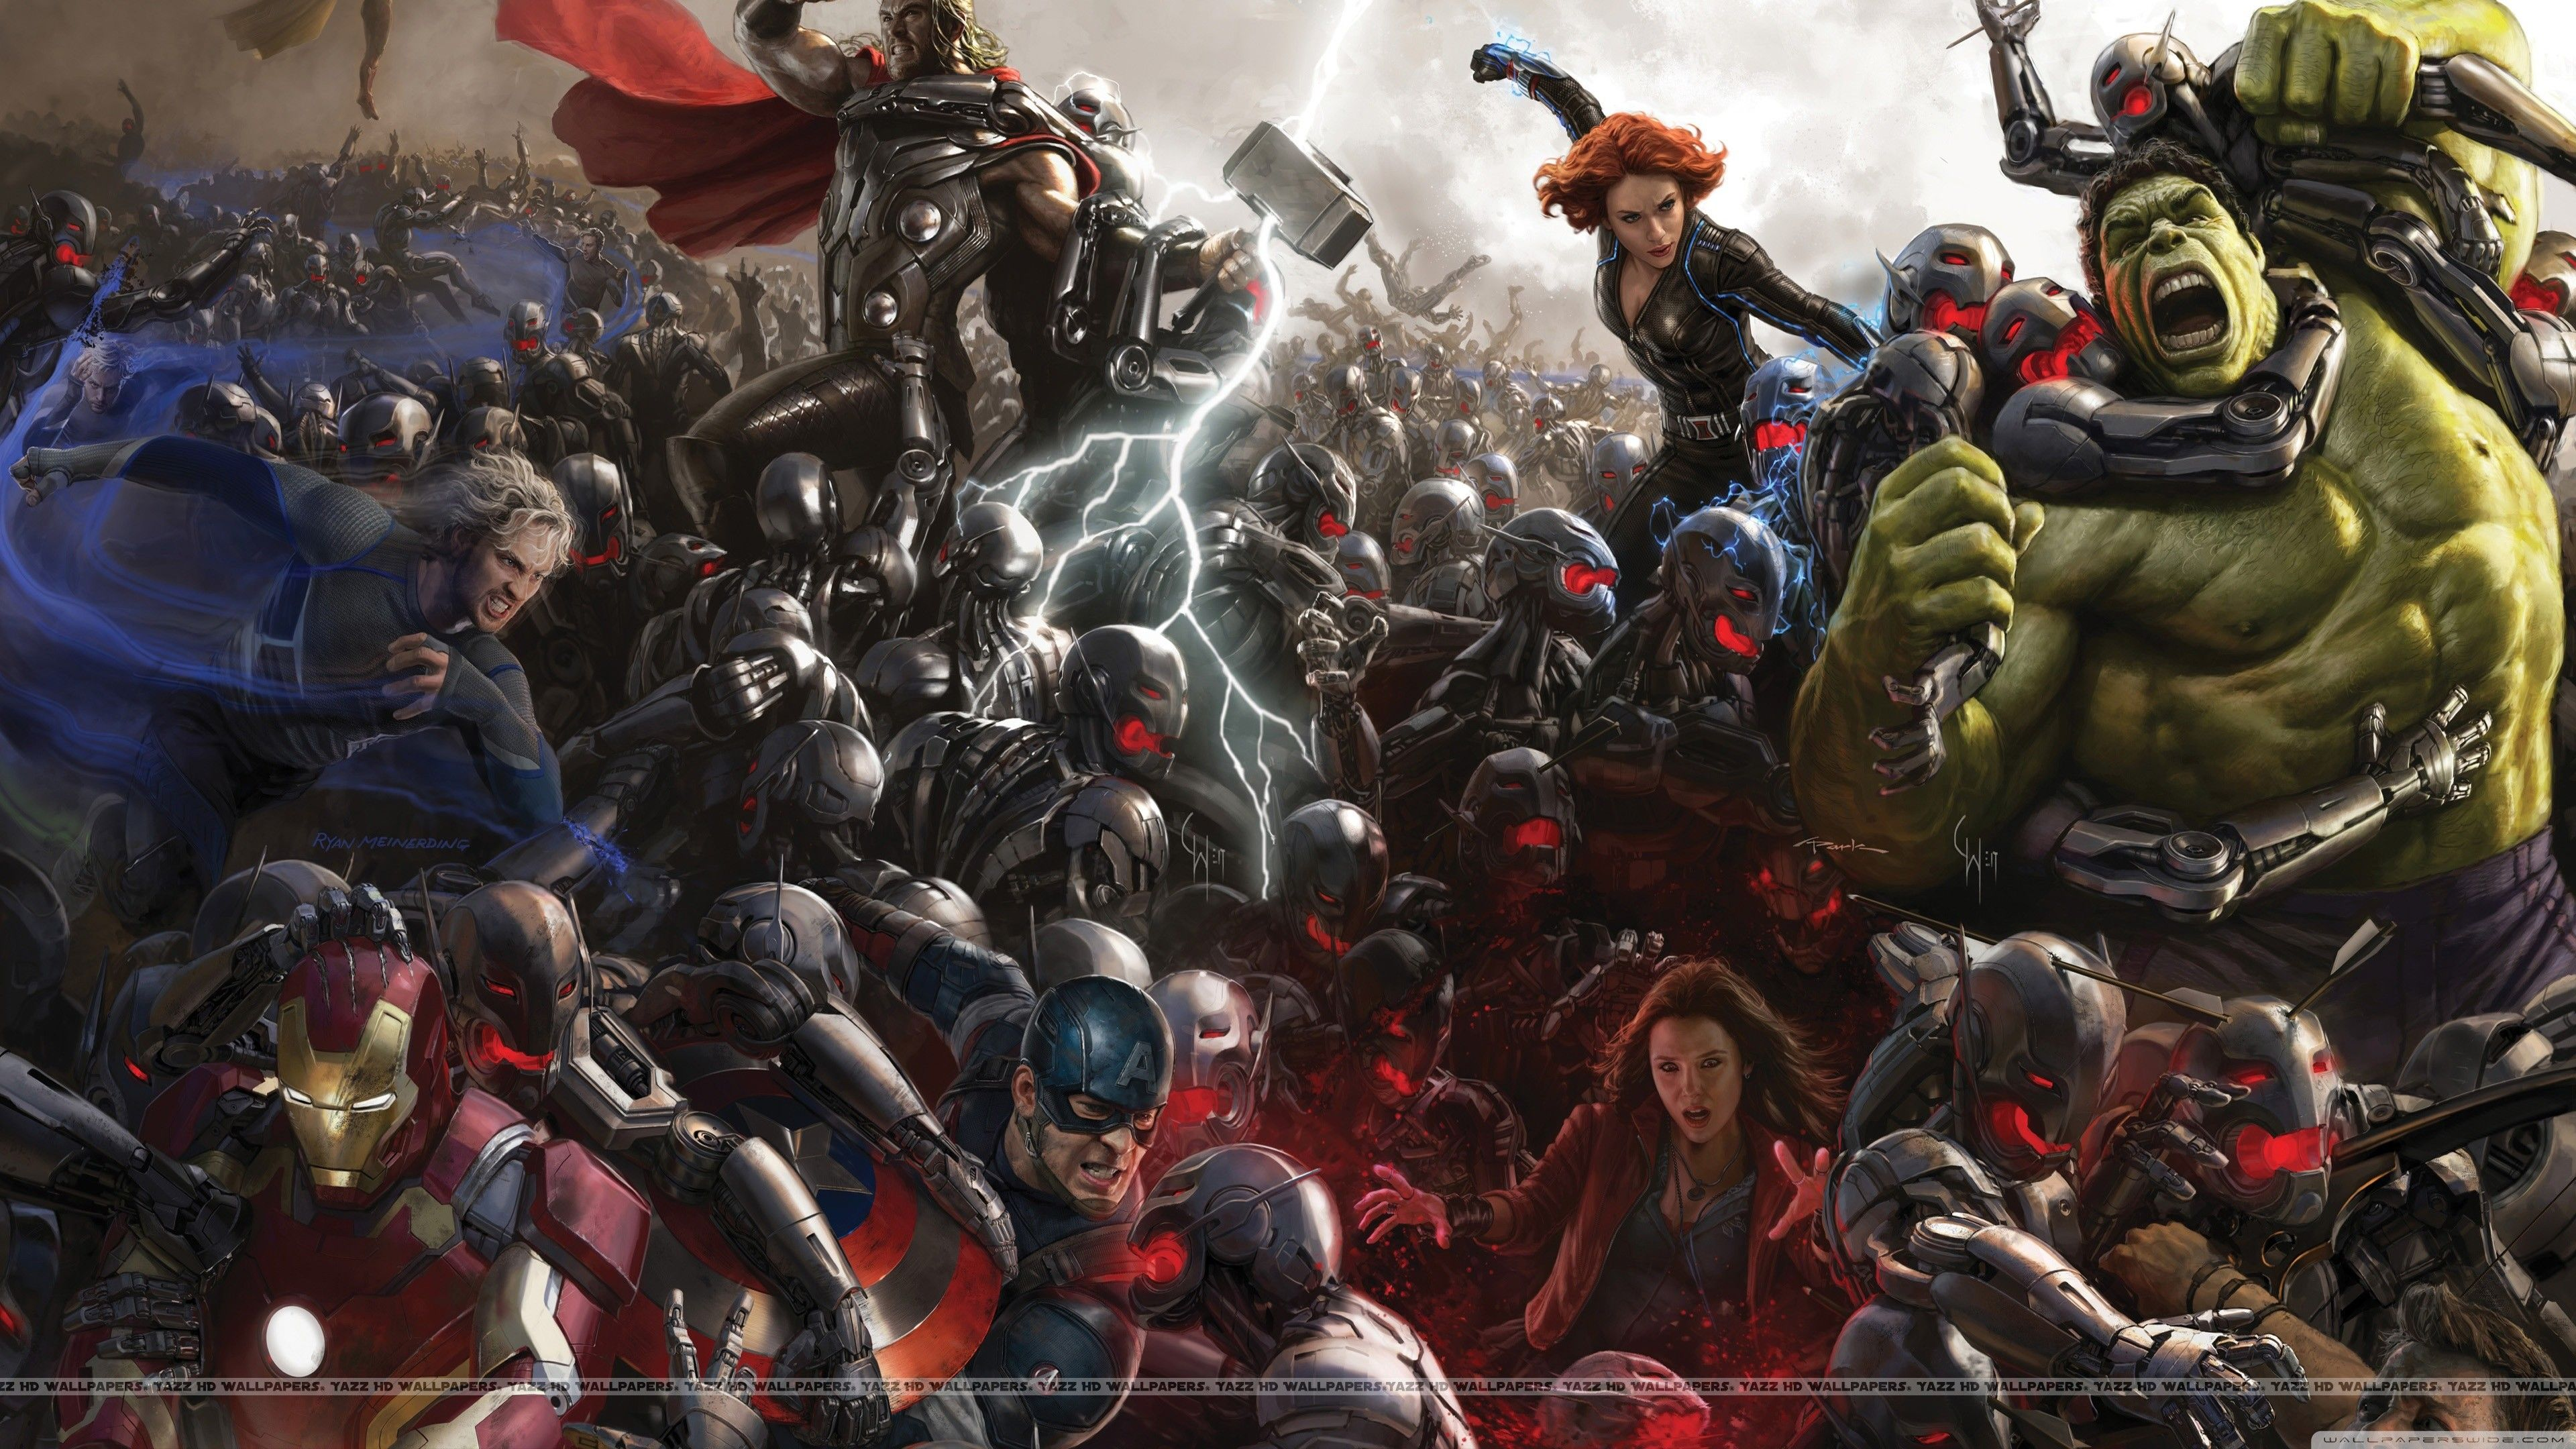 Avengers Pc Wallpapers Top Free Avengers Pc Backgrounds Wallpaperaccess